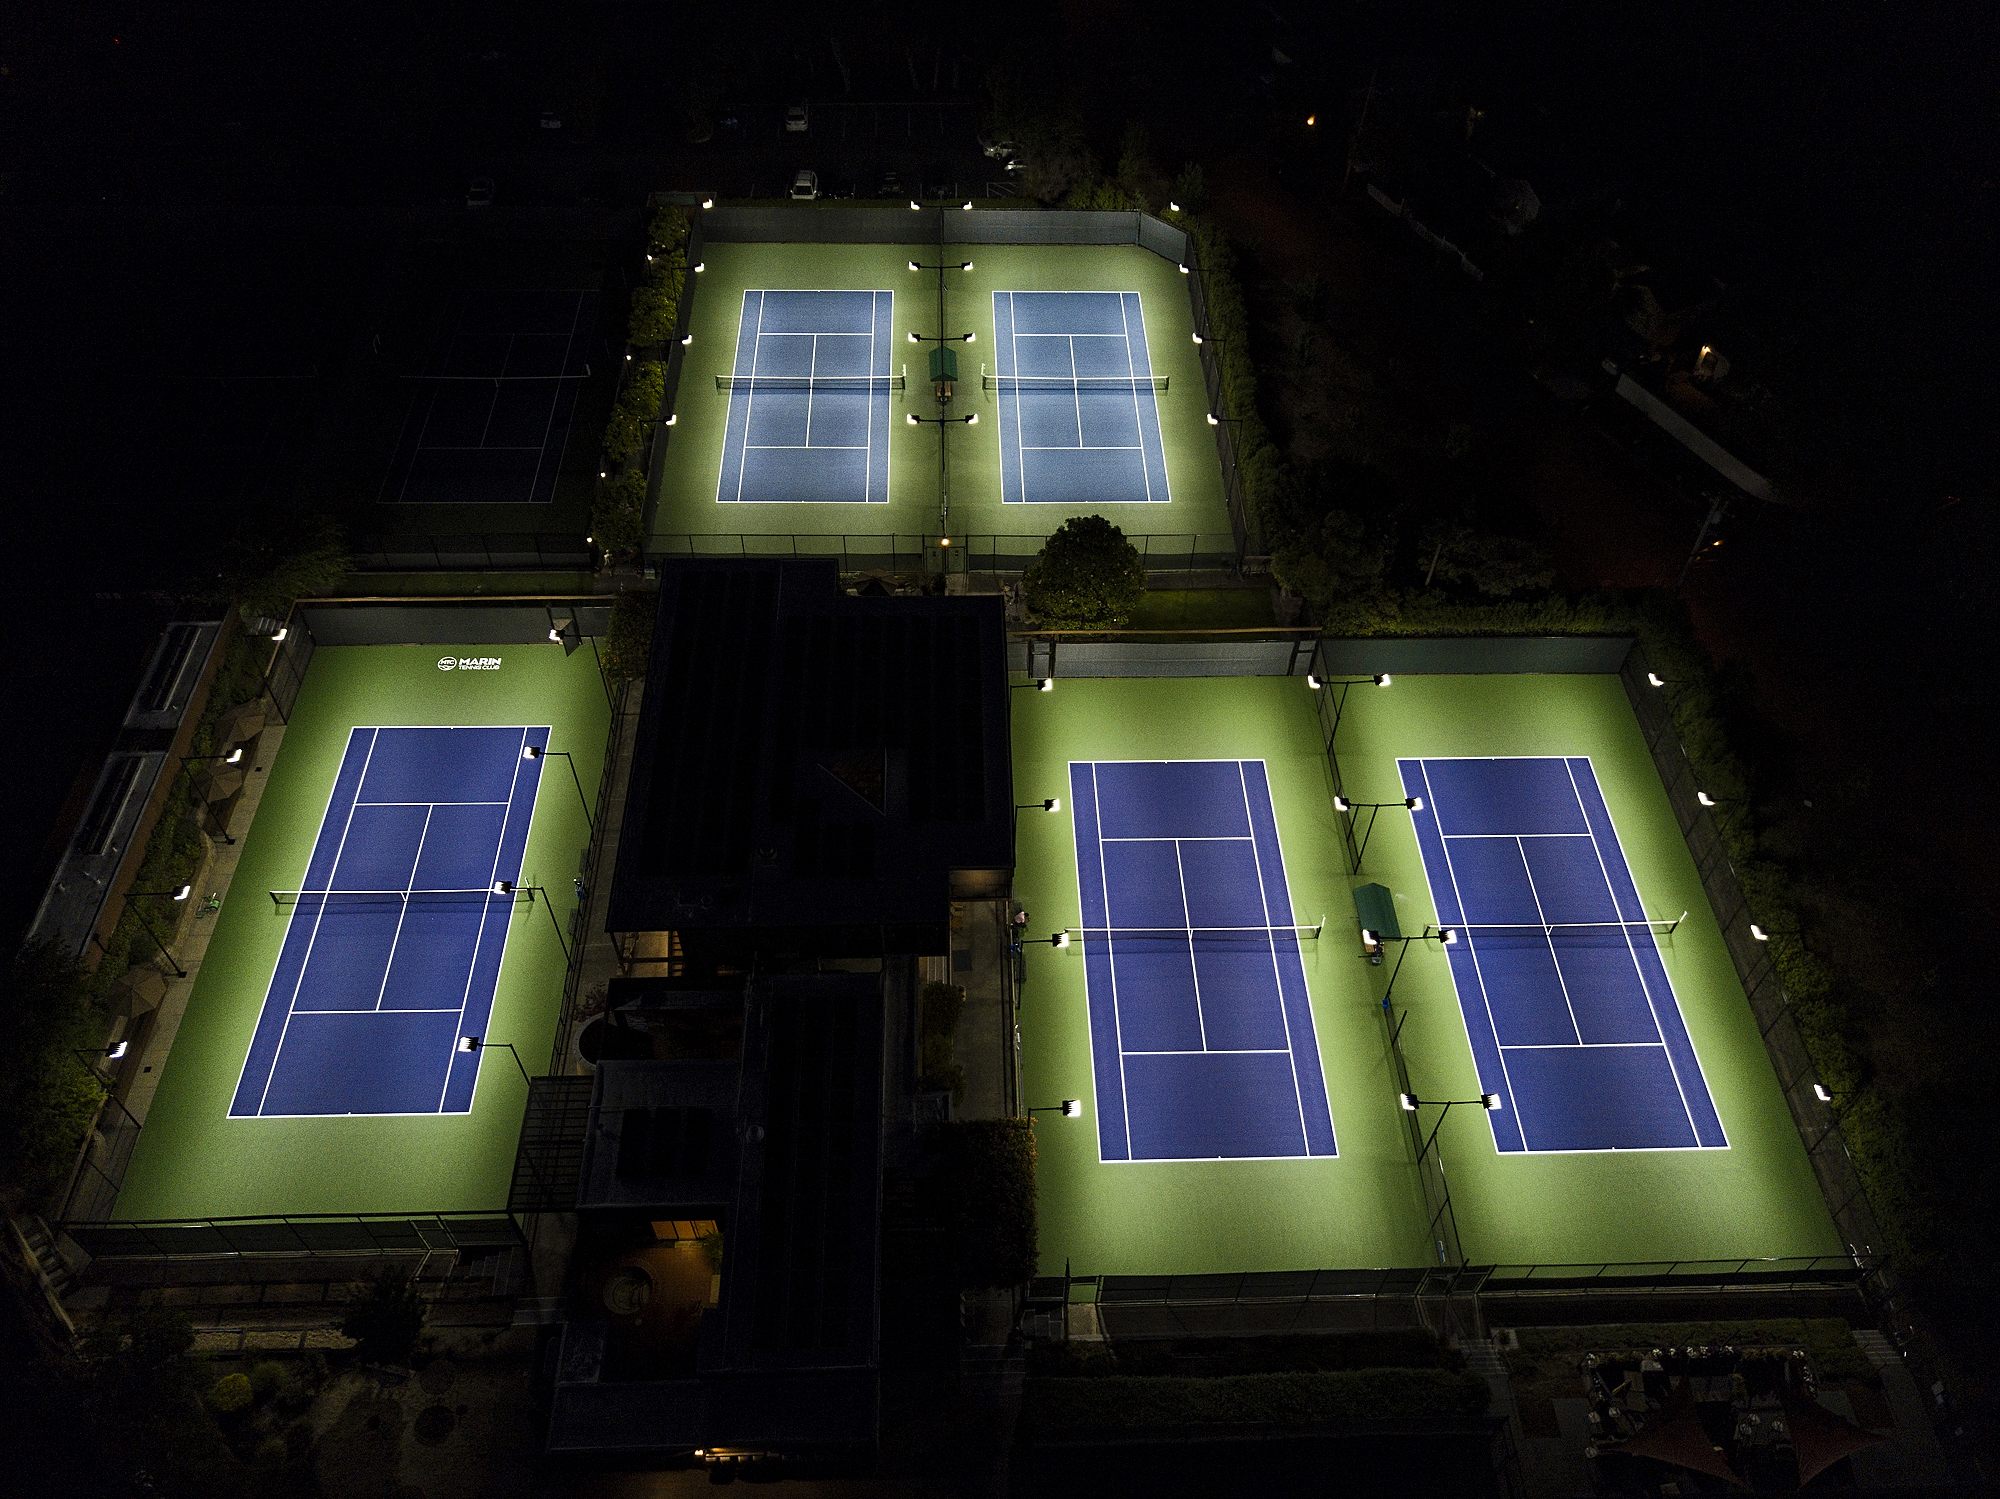 Aerial view of three tennis courts at Marin Country Club lit up by LED Lights installed by ReGreen